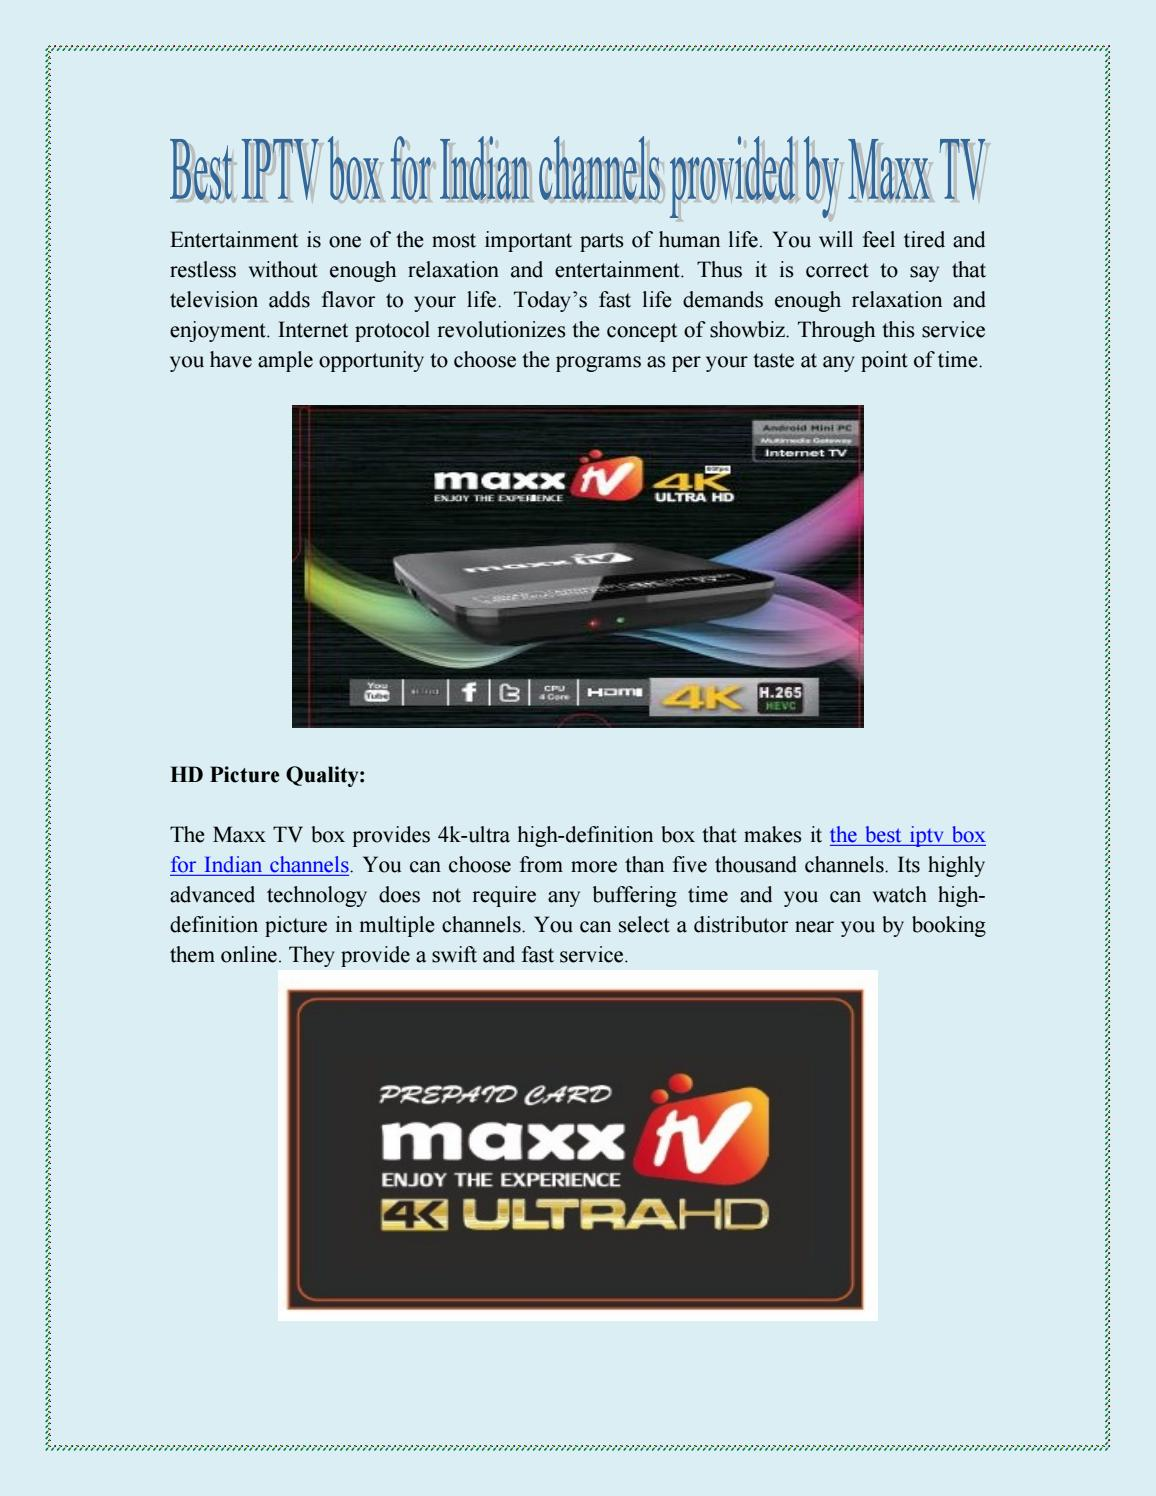 Best iptv box for indian channels provided by maxx tv by maxxtvbox